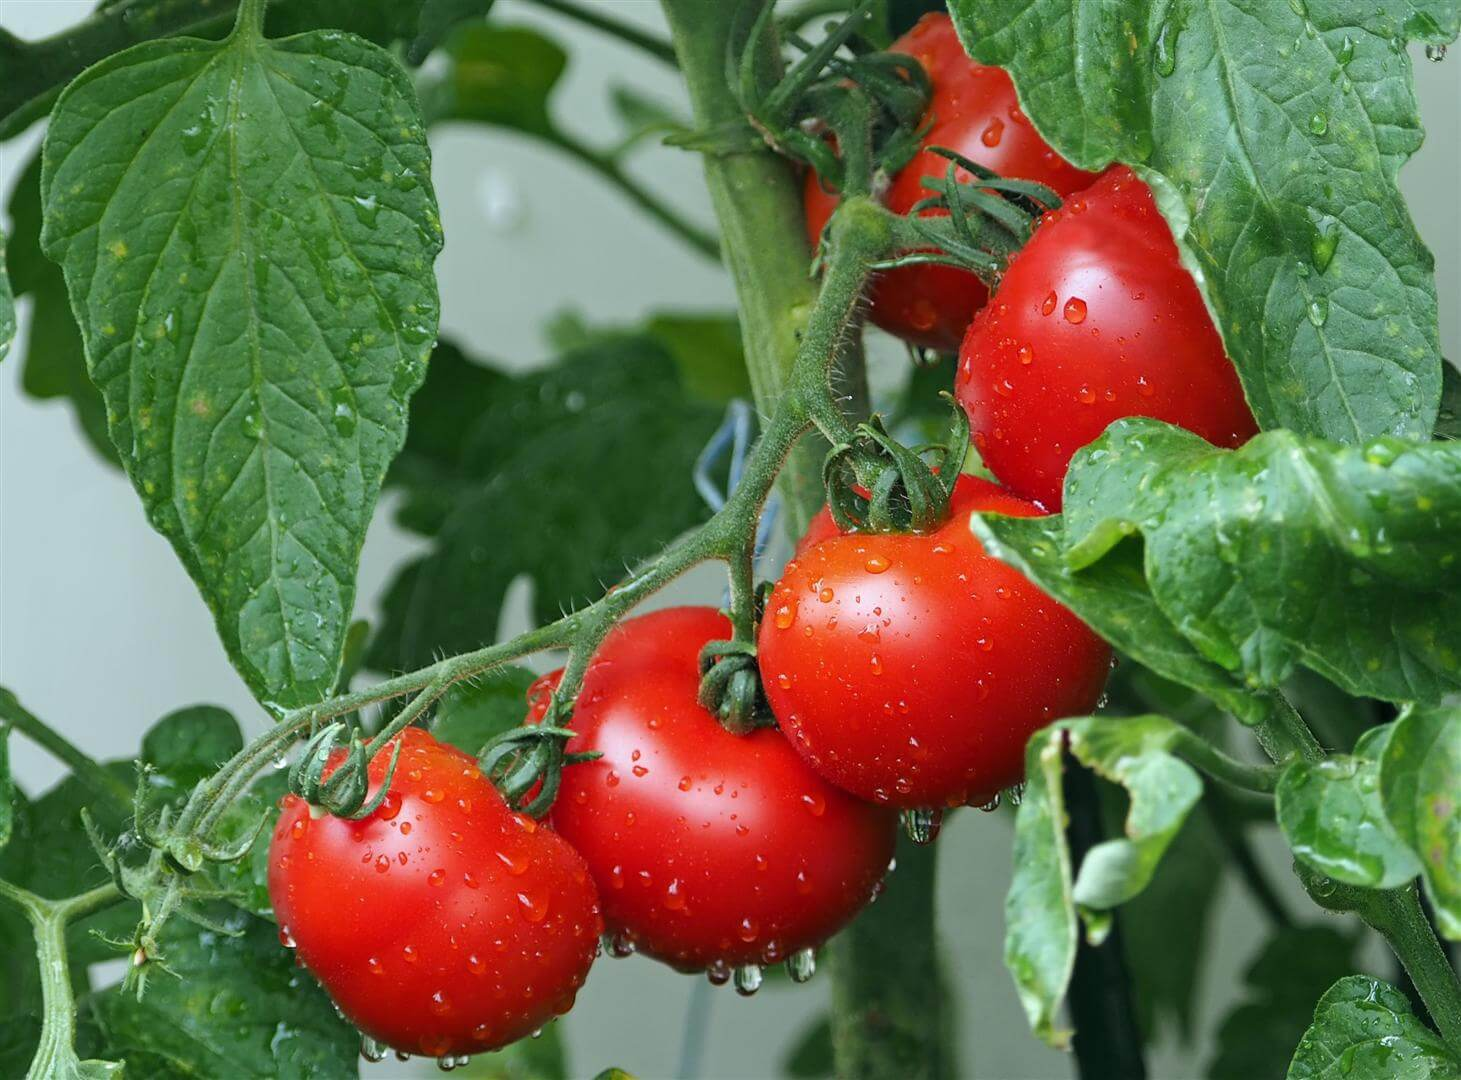 Tomato Jos: The Beginning of a Farming Success Story.